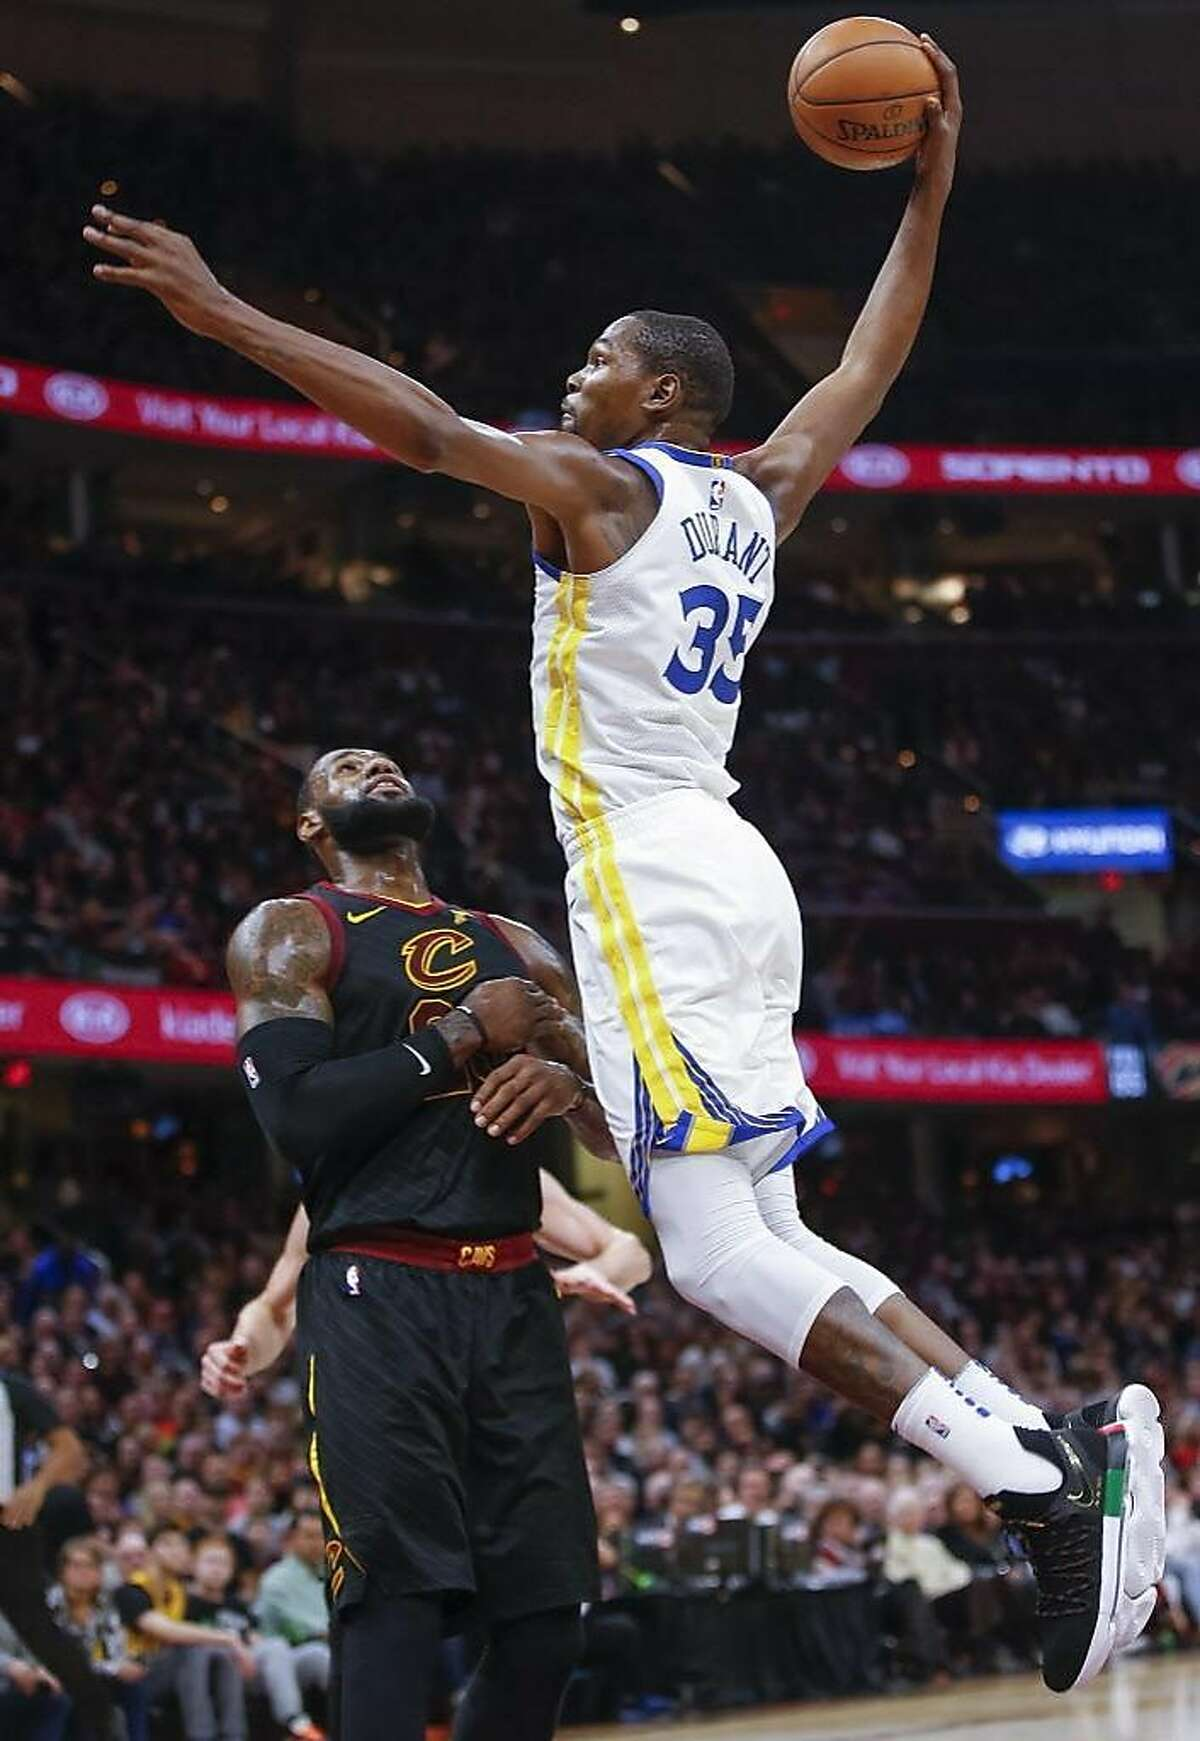 Kevin Durant of the Golden State Warriors goes up for the dunk over LeBron James #23 of the Cleveland Cavaliers at Quicken Loans Arena on January 15, 2018 in Cleveland, Ohio.